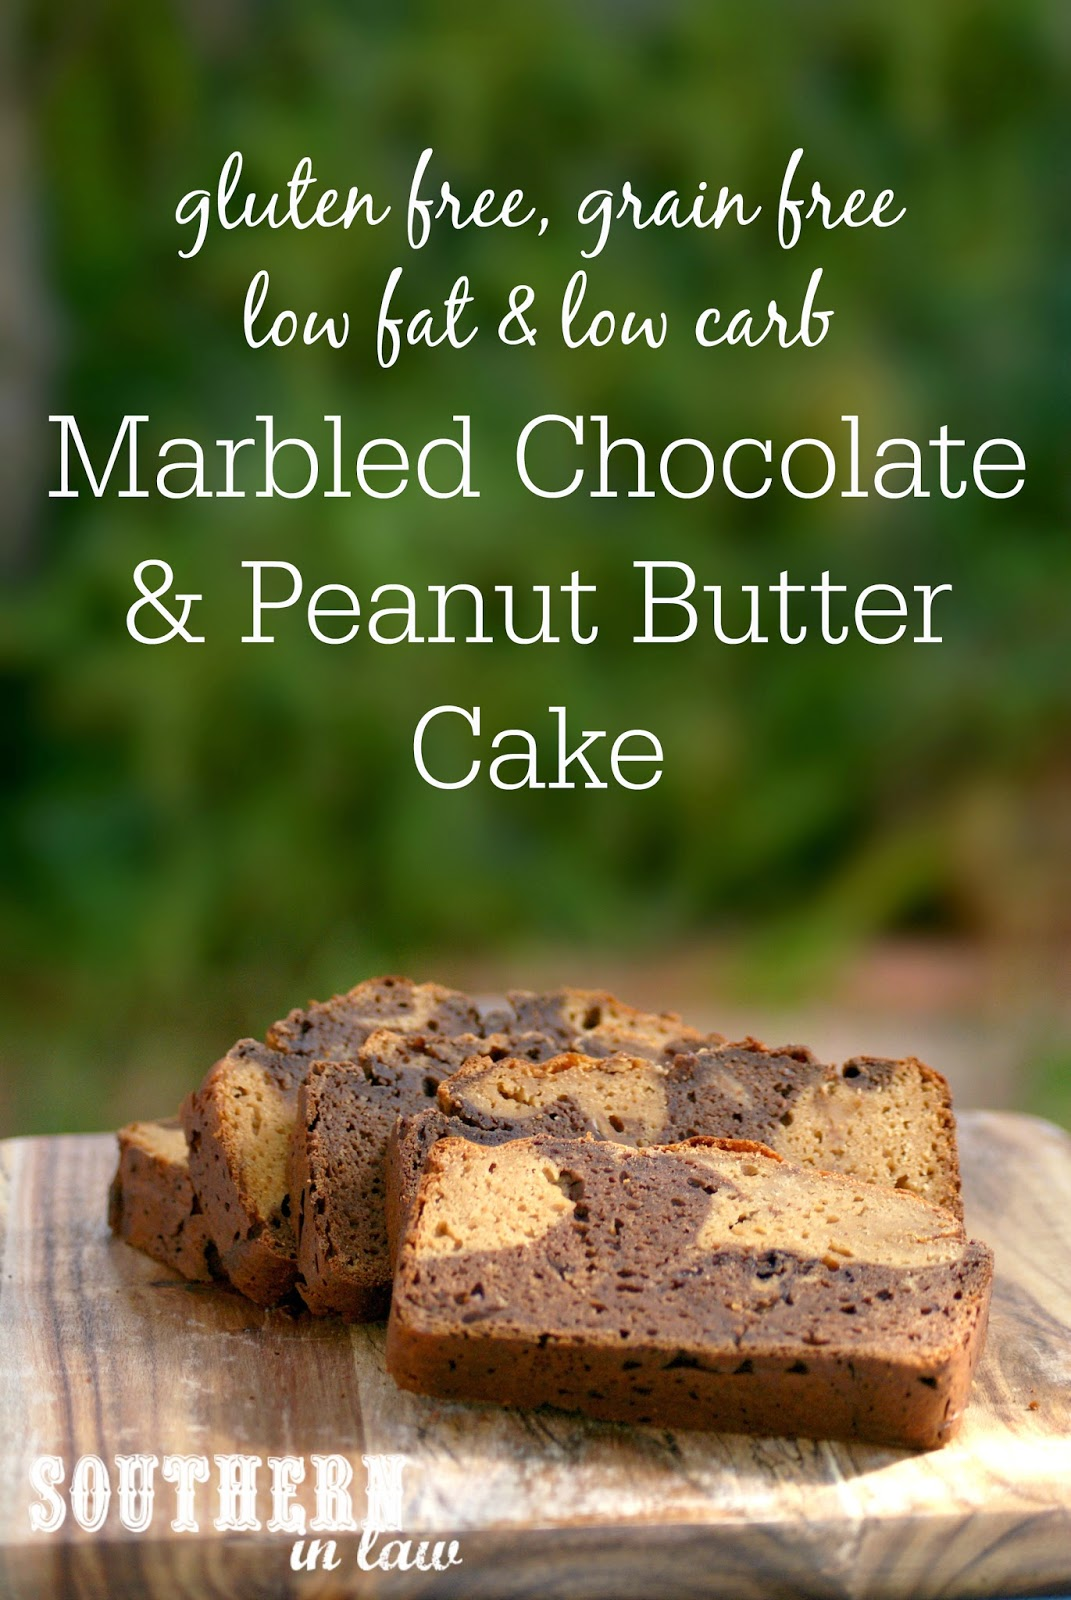 High Protein and Low Carb Marbled Chocolate And Peanut Butter Cake Recipe